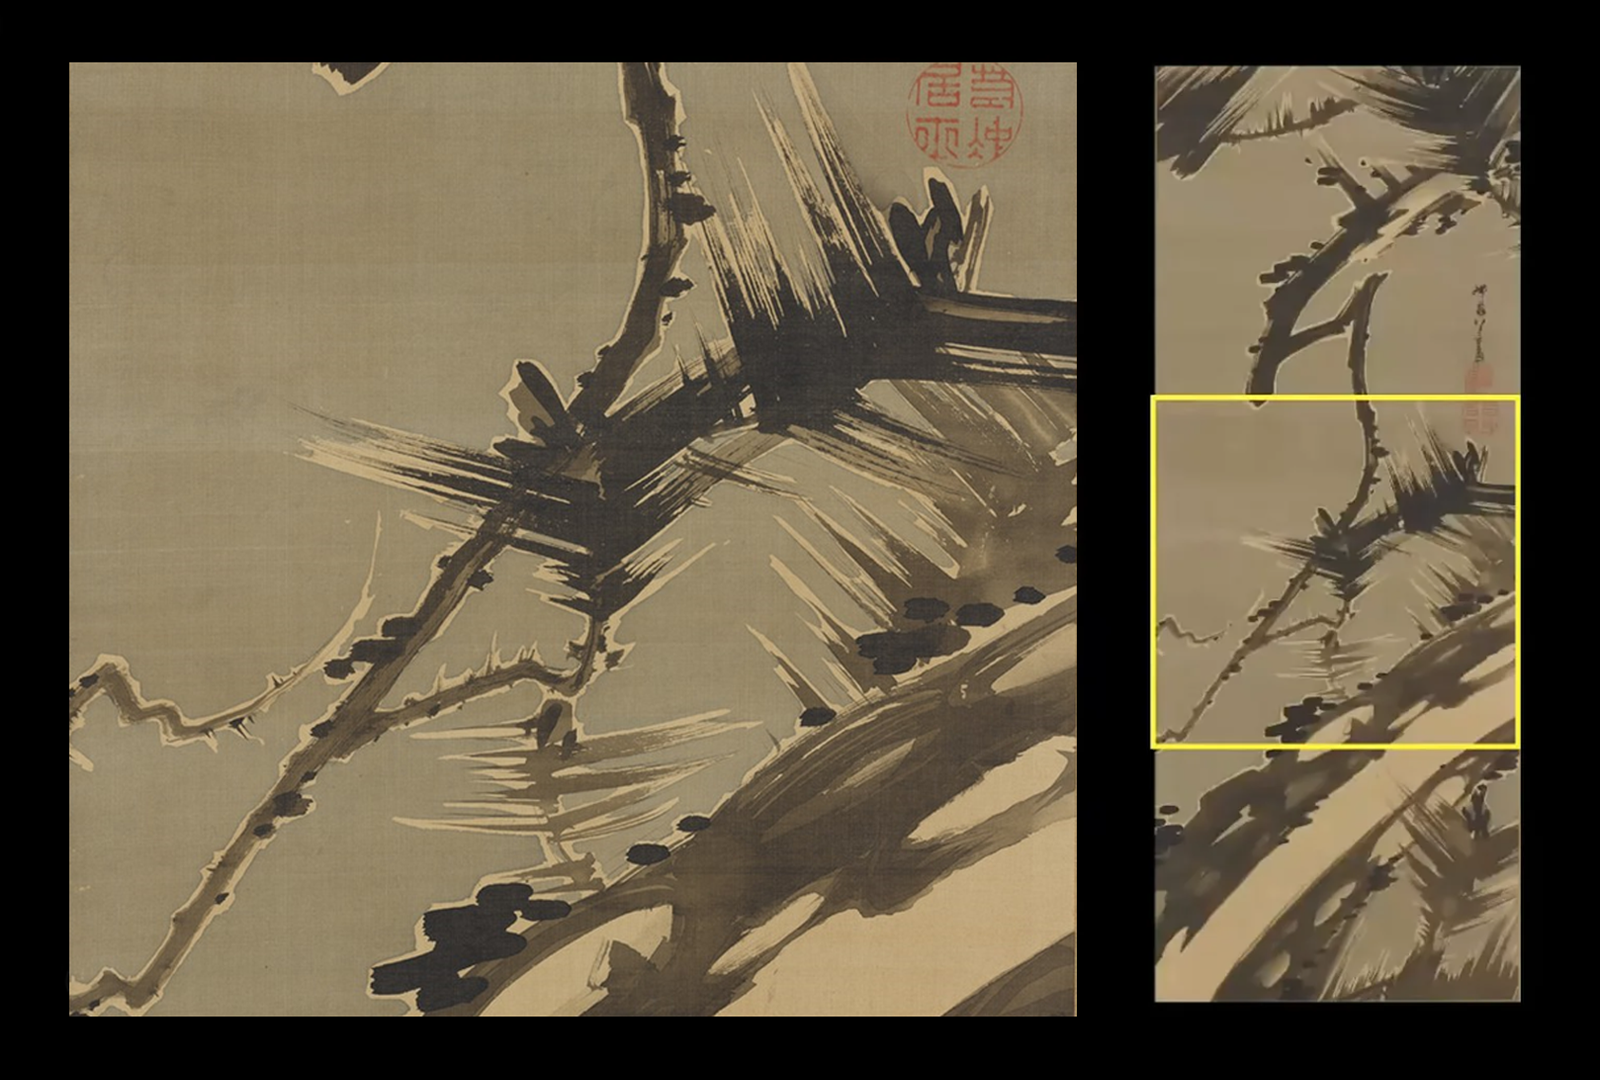 There are two images side by side. The left image is a detail of an ink painting. It shows a close-up detail pine tree branch with sharp, twisted branches and long delicate needles against a gray background with accents of white. The right image is the full image of the ink painting of the pine on silk. A thin yellow square border surrounds the image detailed at left.